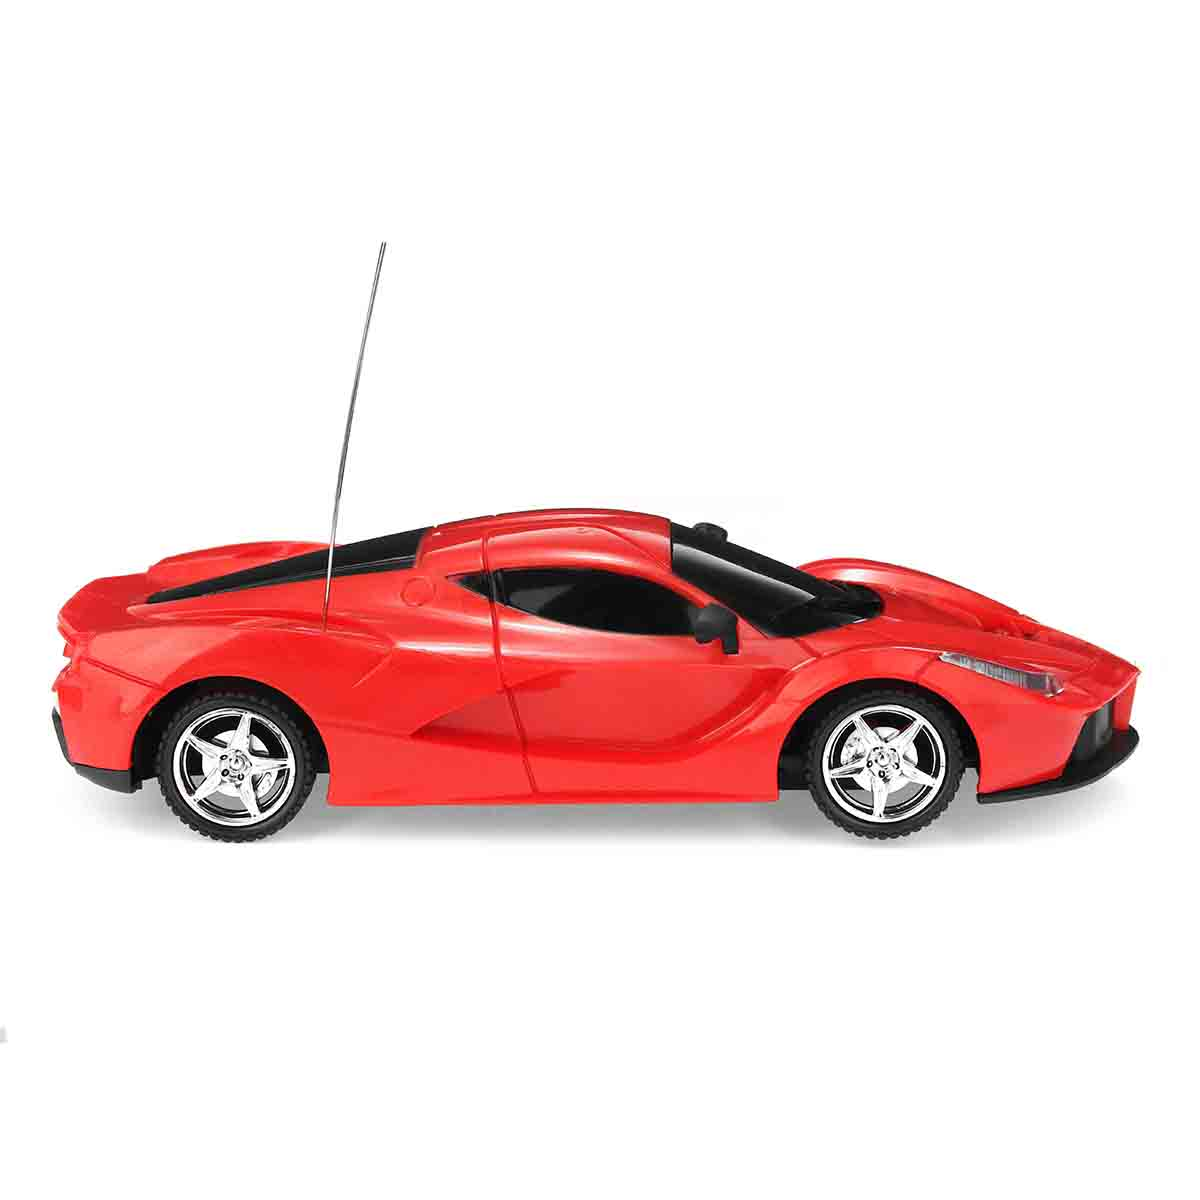 1:24 Scale Lamborghini Radio Remote Control Model Car Remote Control Toy with Headlights for Kids Adults (Red) Hobby Gift